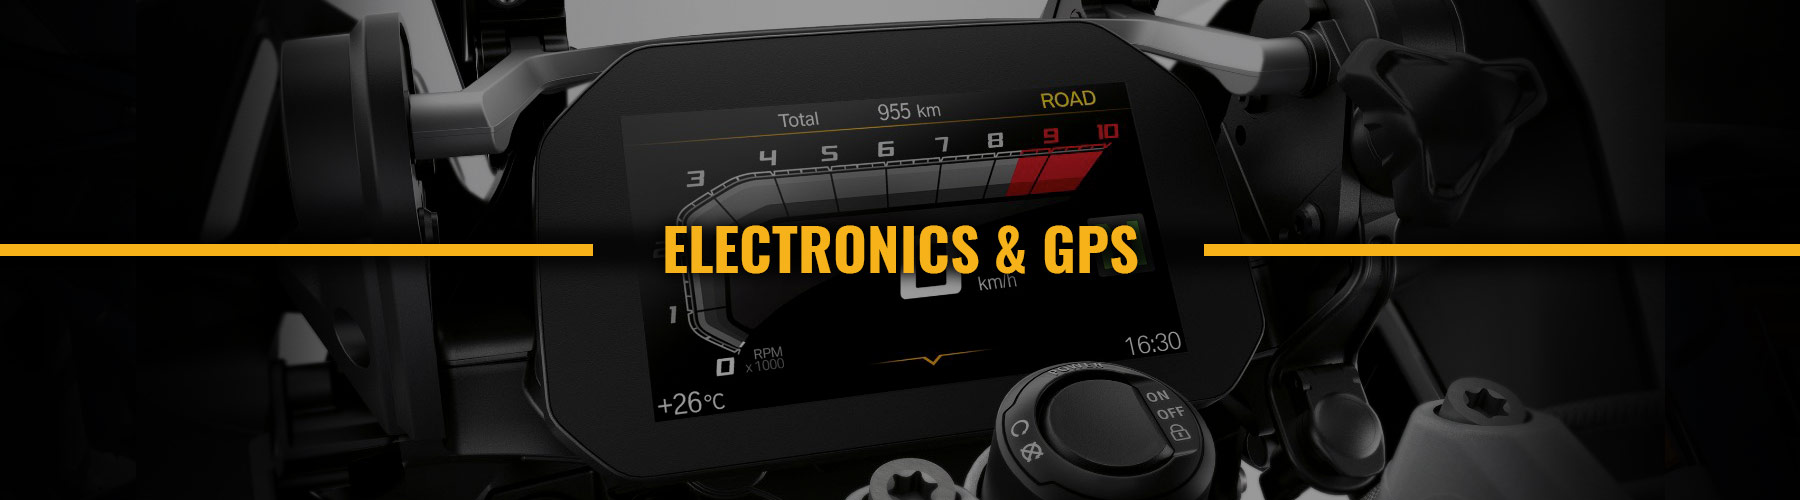 Twisted Trails - Category-Electronics-GPS